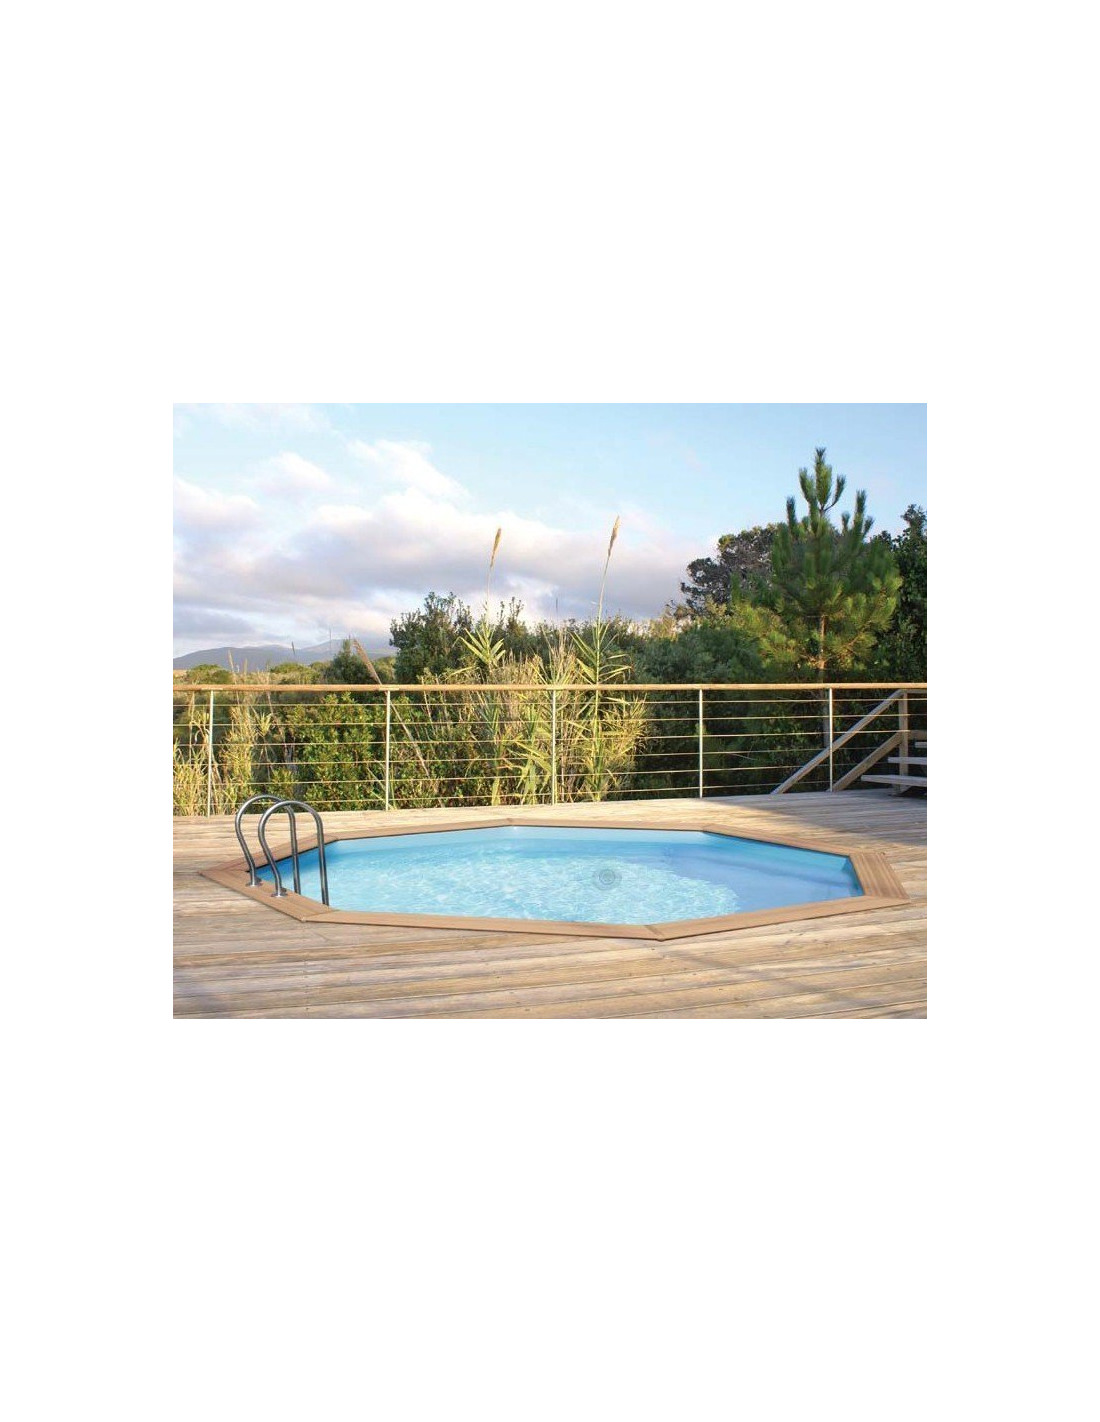 Piscine weva bois 5 28m x 1 33m home piscine for Piscine weva